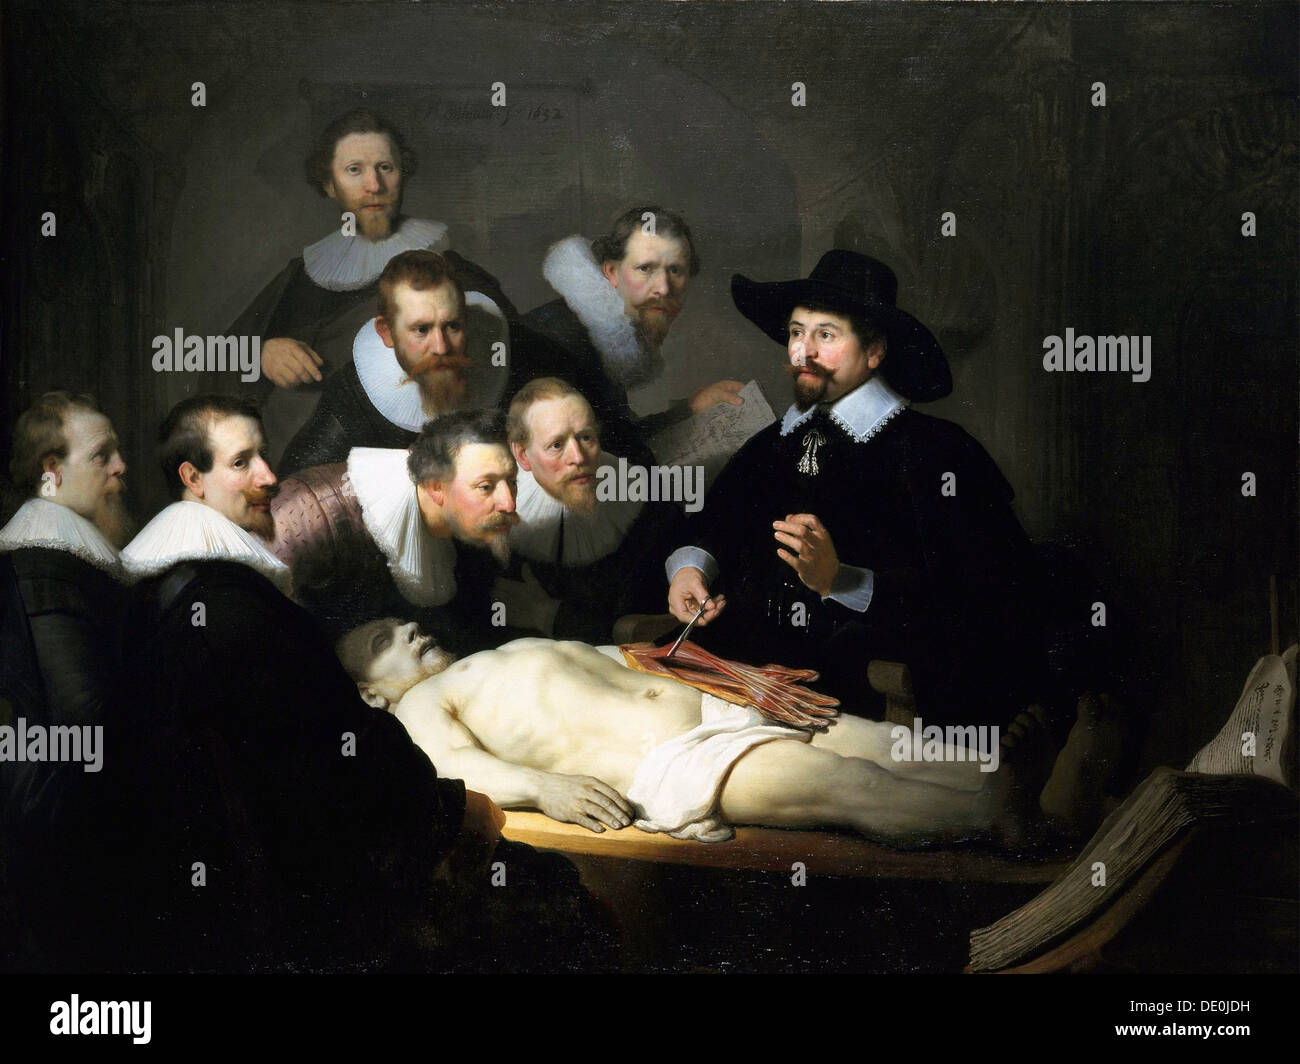 The Anatomy Lesson of Dr Nicolaes Tulp\', 1632. Artist: Rembrandt ...